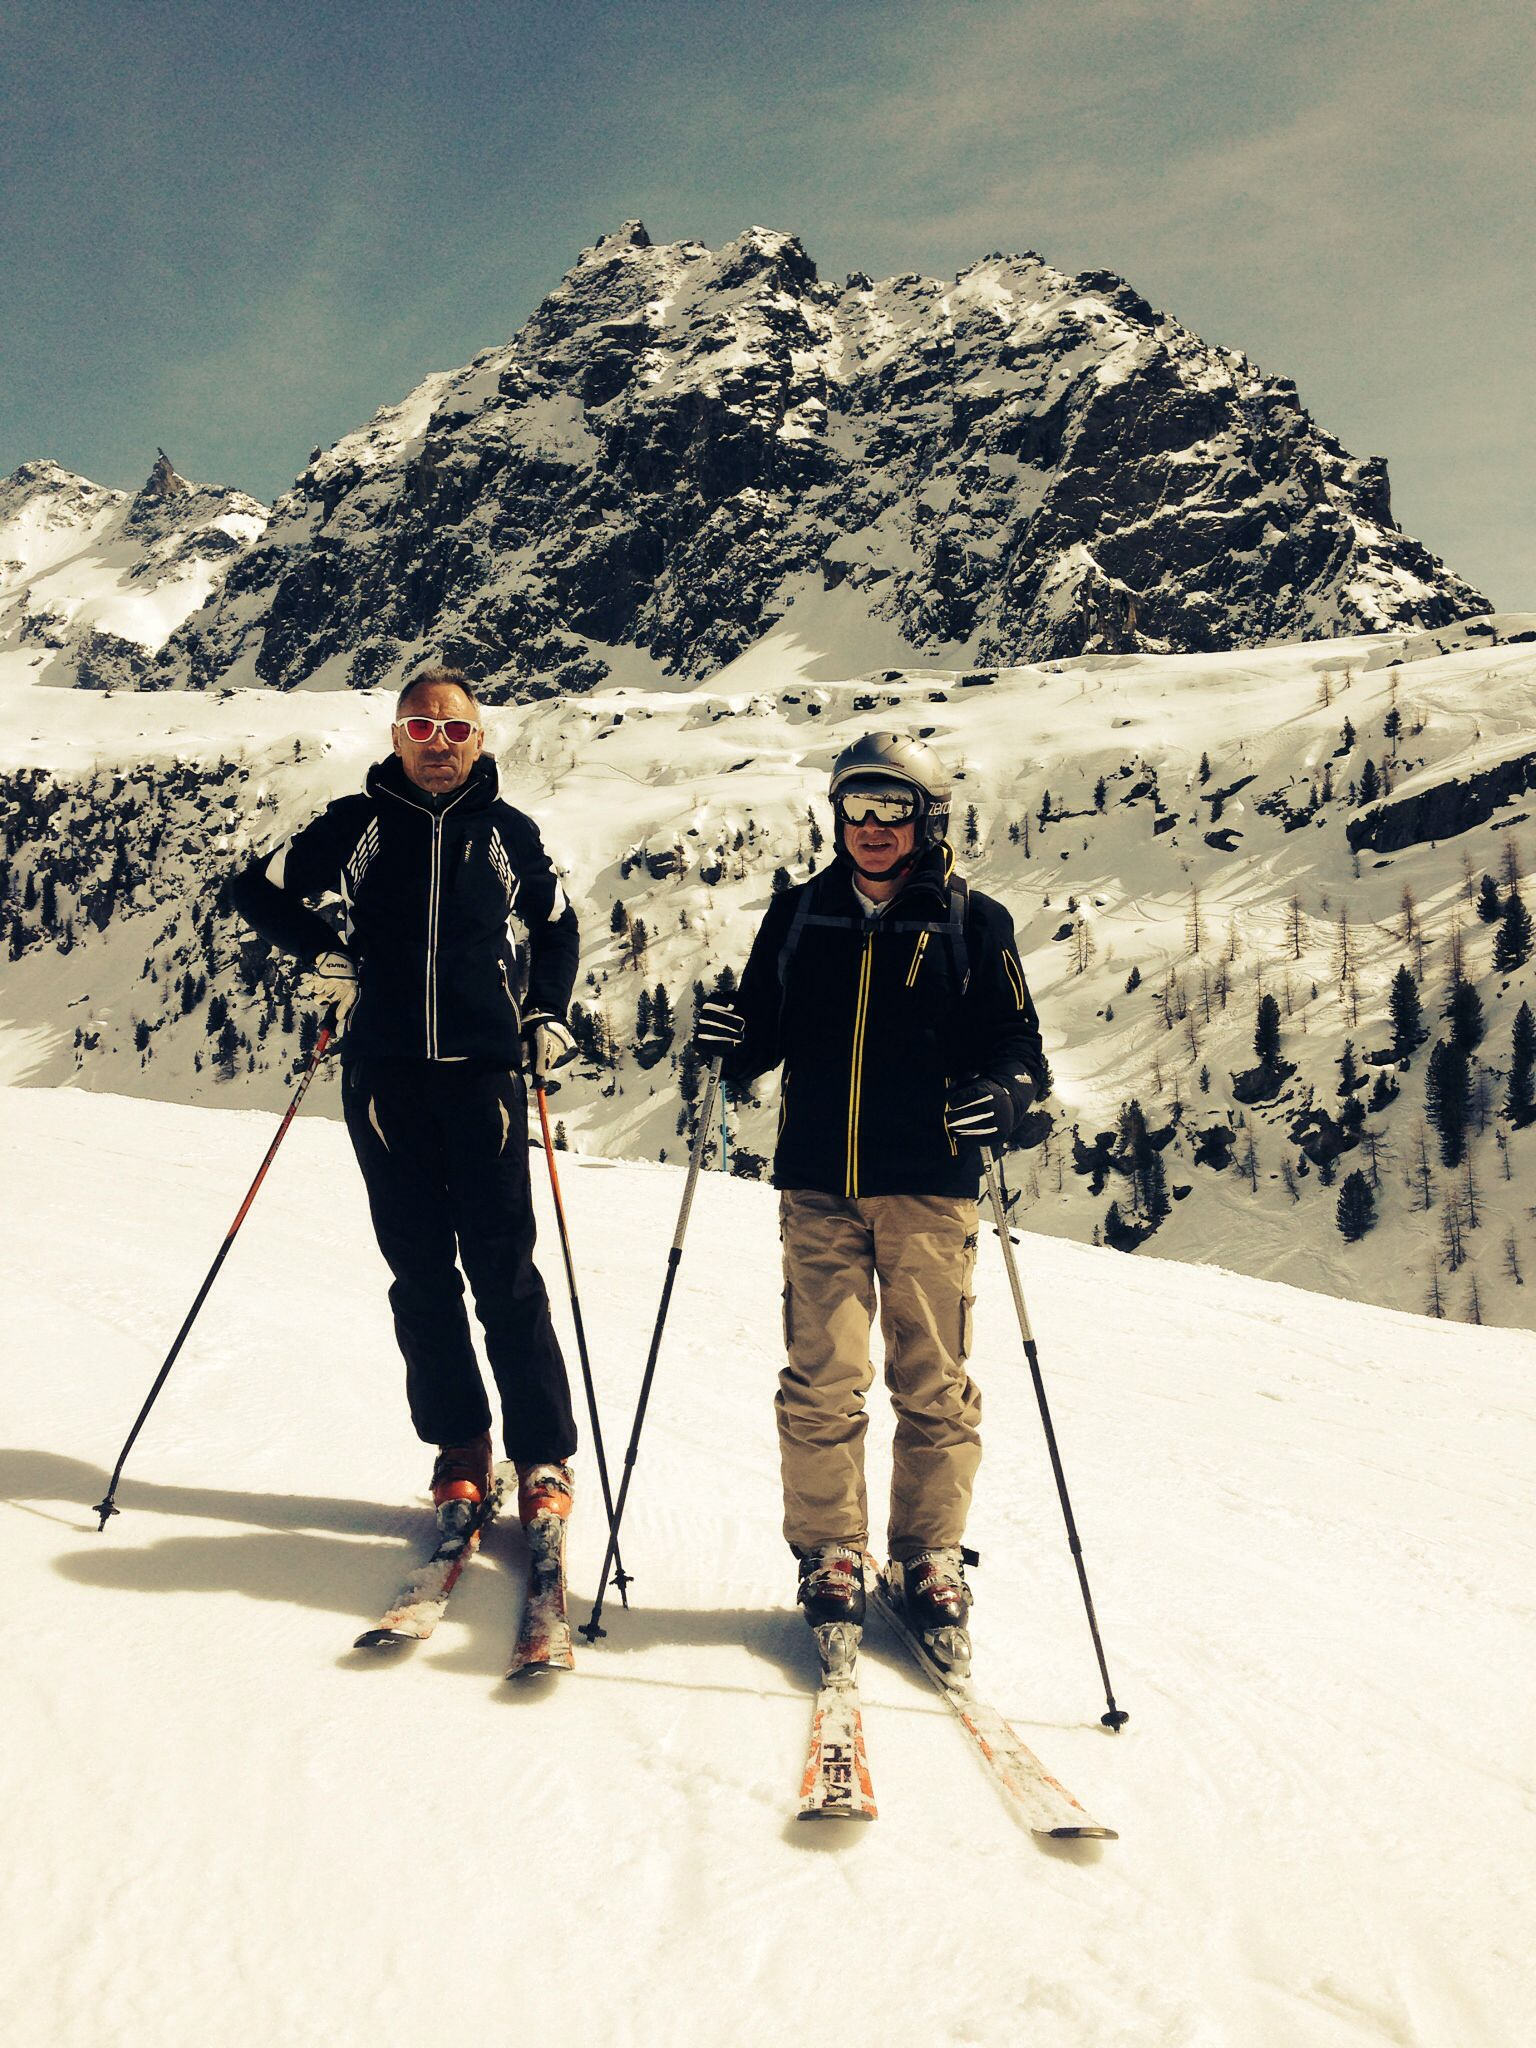 Skiing on Monte Rosa